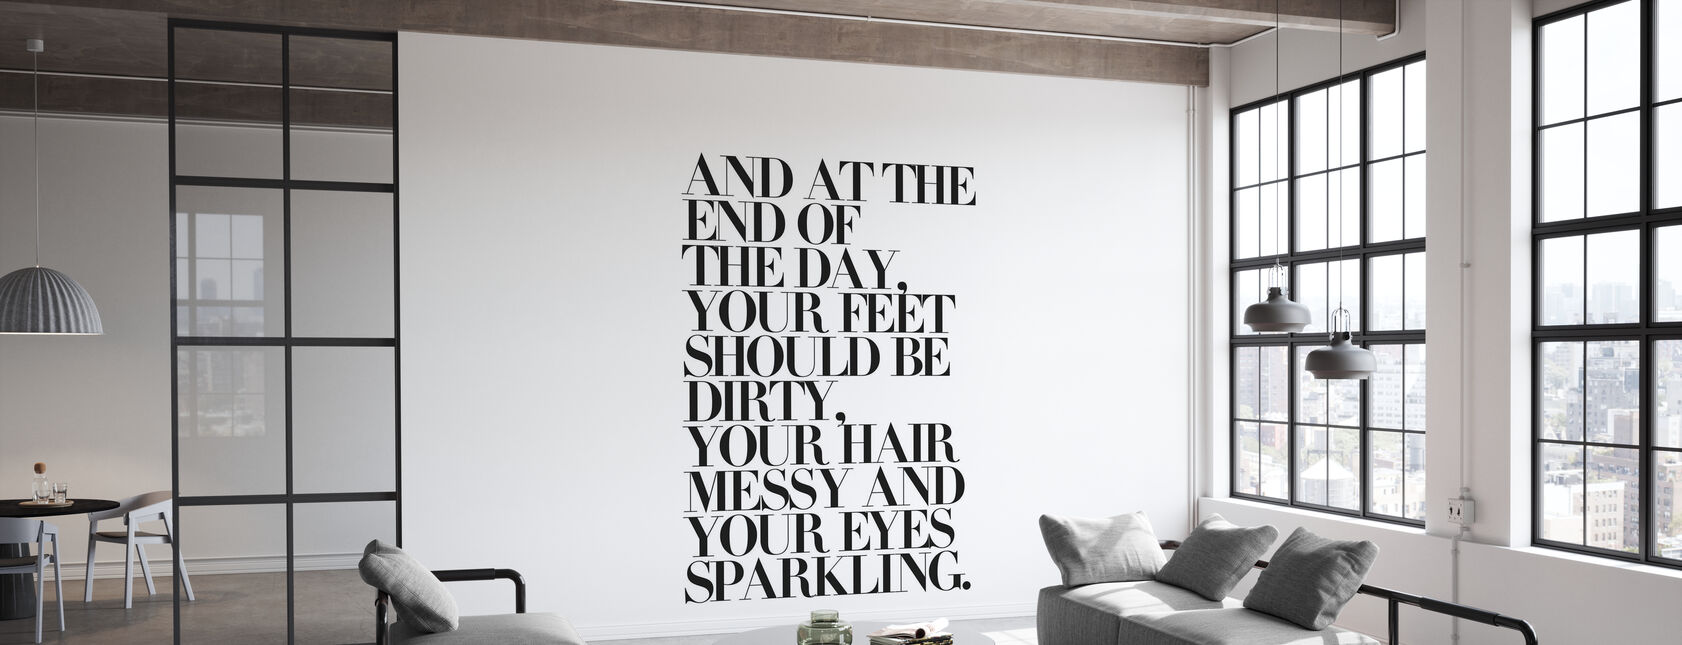 At the End of the Day Your Feet Should Be - Wallpaper - Office